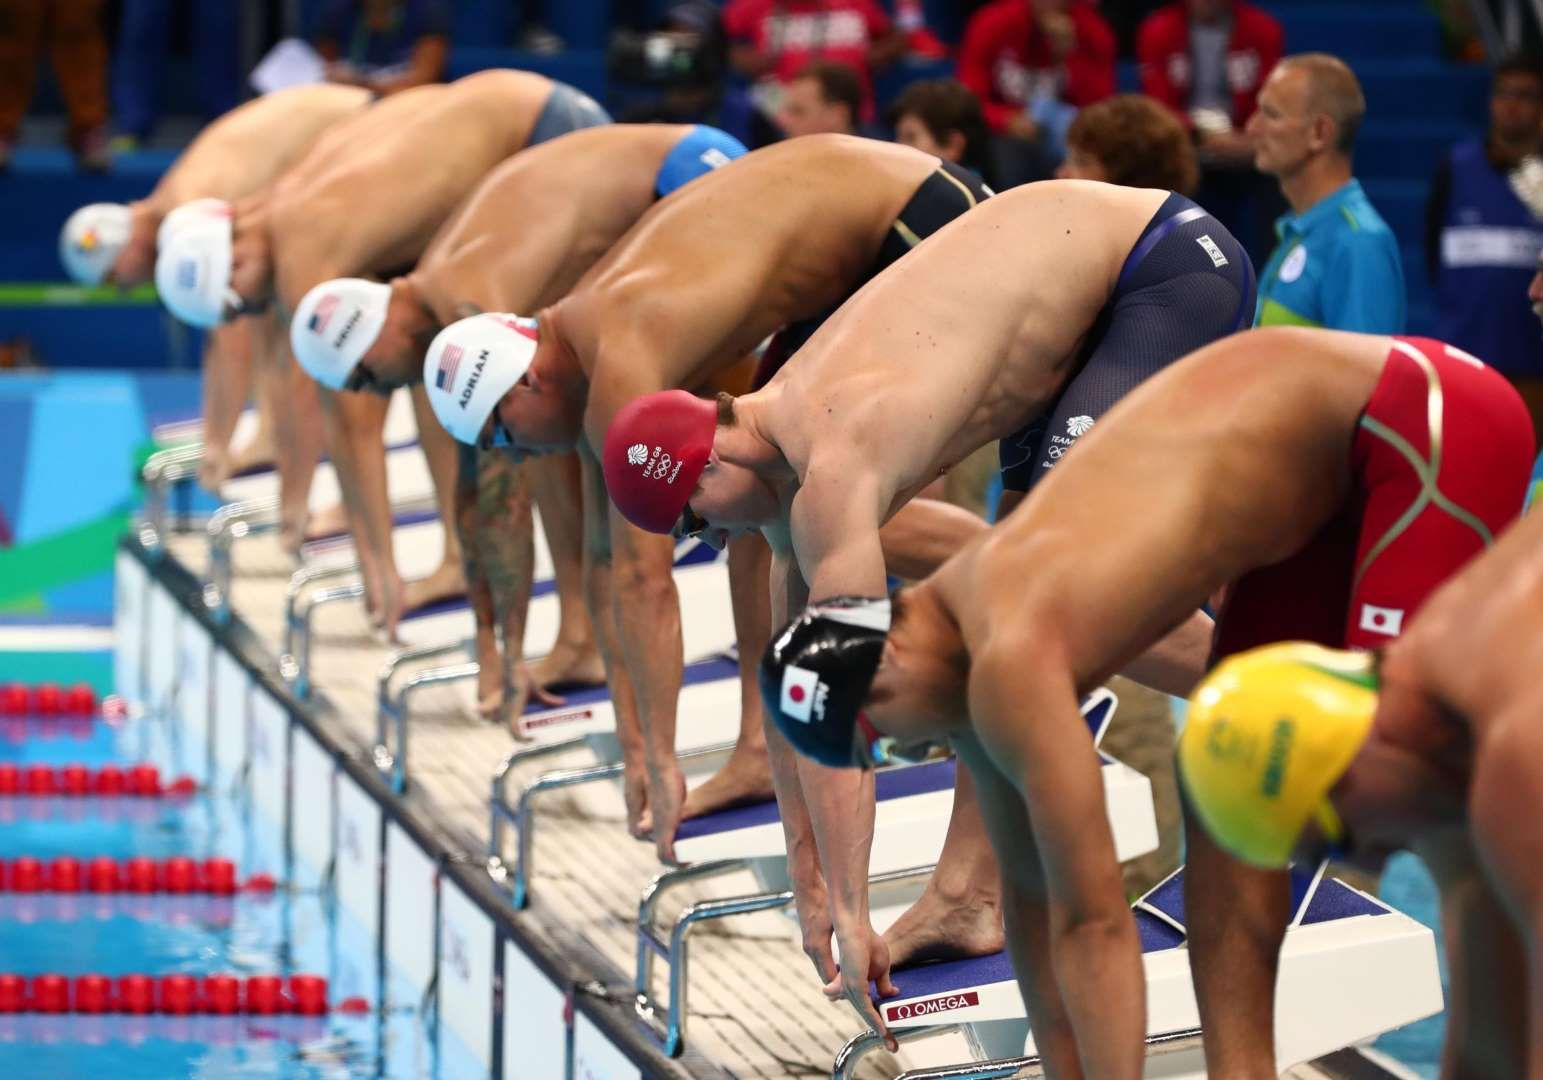 swimmers wait in the starting blocks during the mens freestyle heats in the rio 2016 summer olympic games at olympic aquatics stadium - Olympic Swimming Starting Blocks